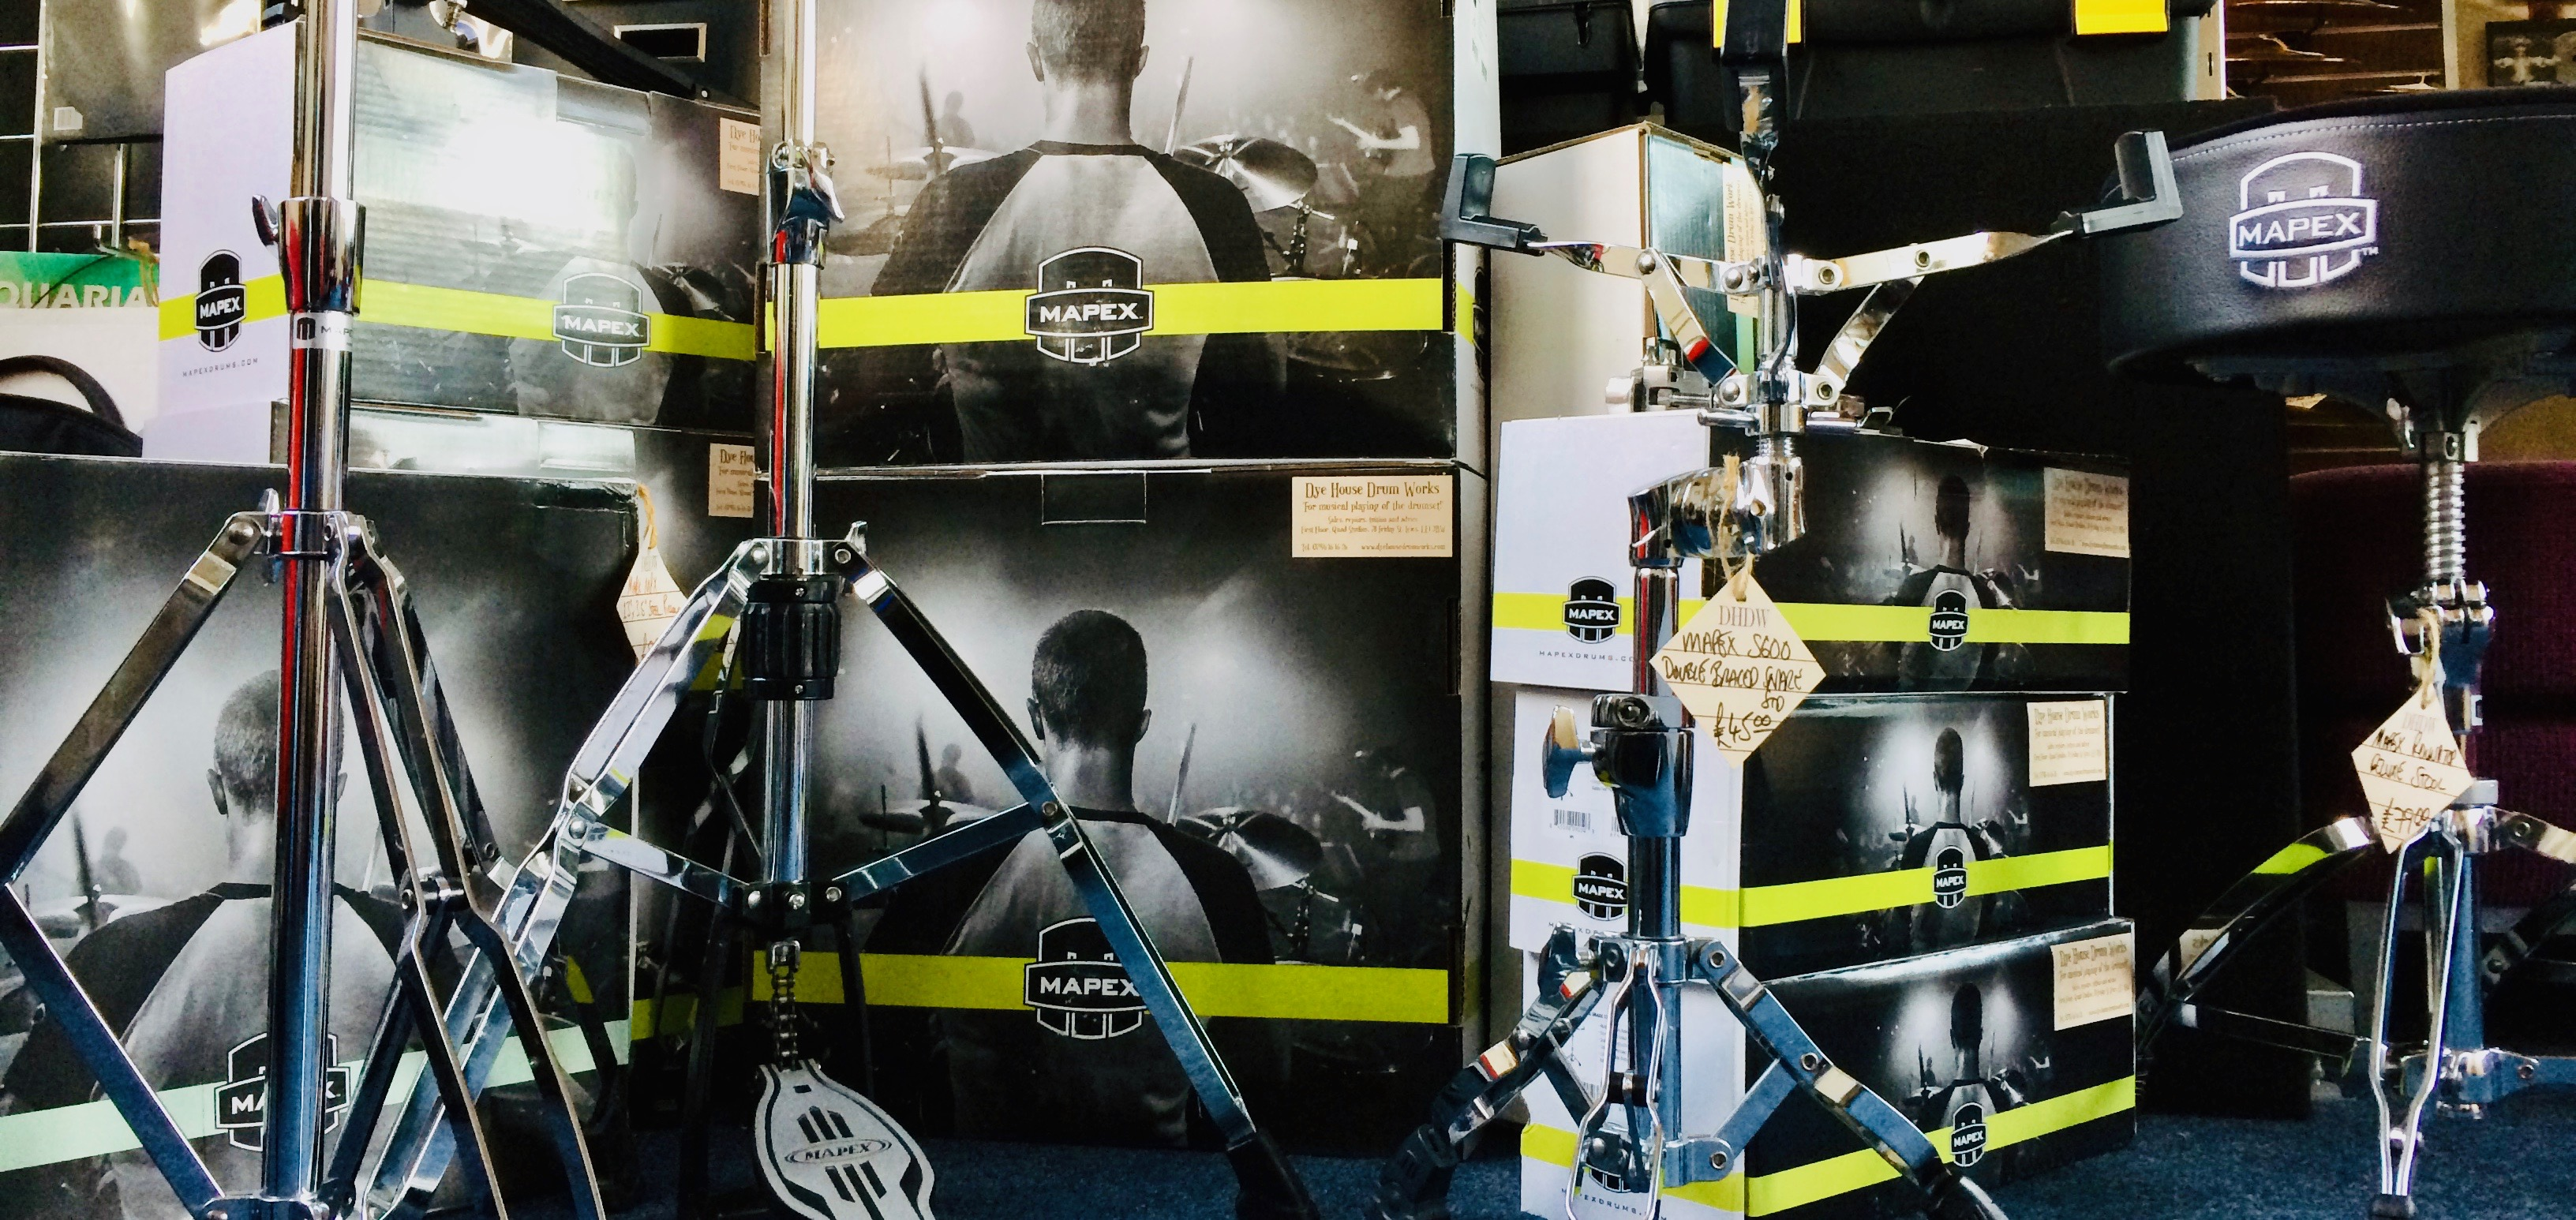 Mapex hardware and boxes - picture